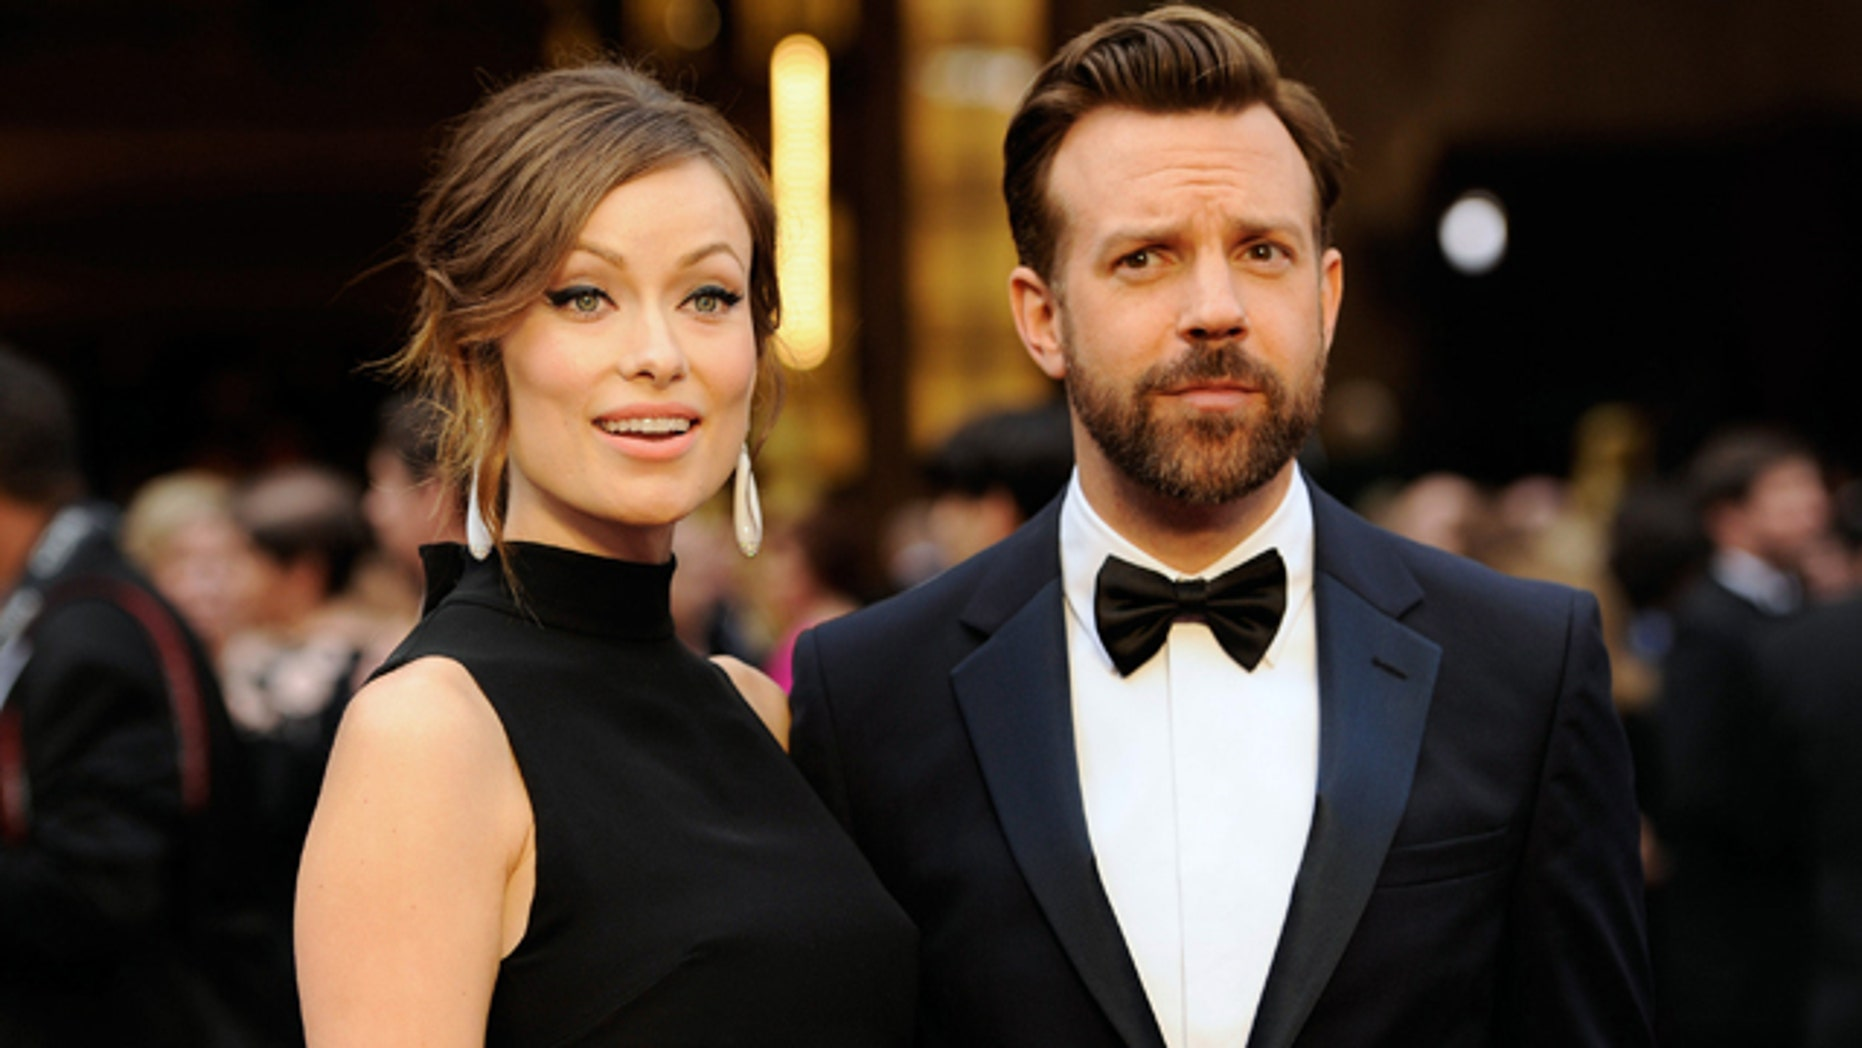 FILE - In this Sunday, March 2, 2014 file photo, Olivia Wilde, and Jason Sudeikis arrive at the Oscars at the Dolby Theatre in Los Angeles. (Photo by Chris Pizzello/Invision/AP, file)